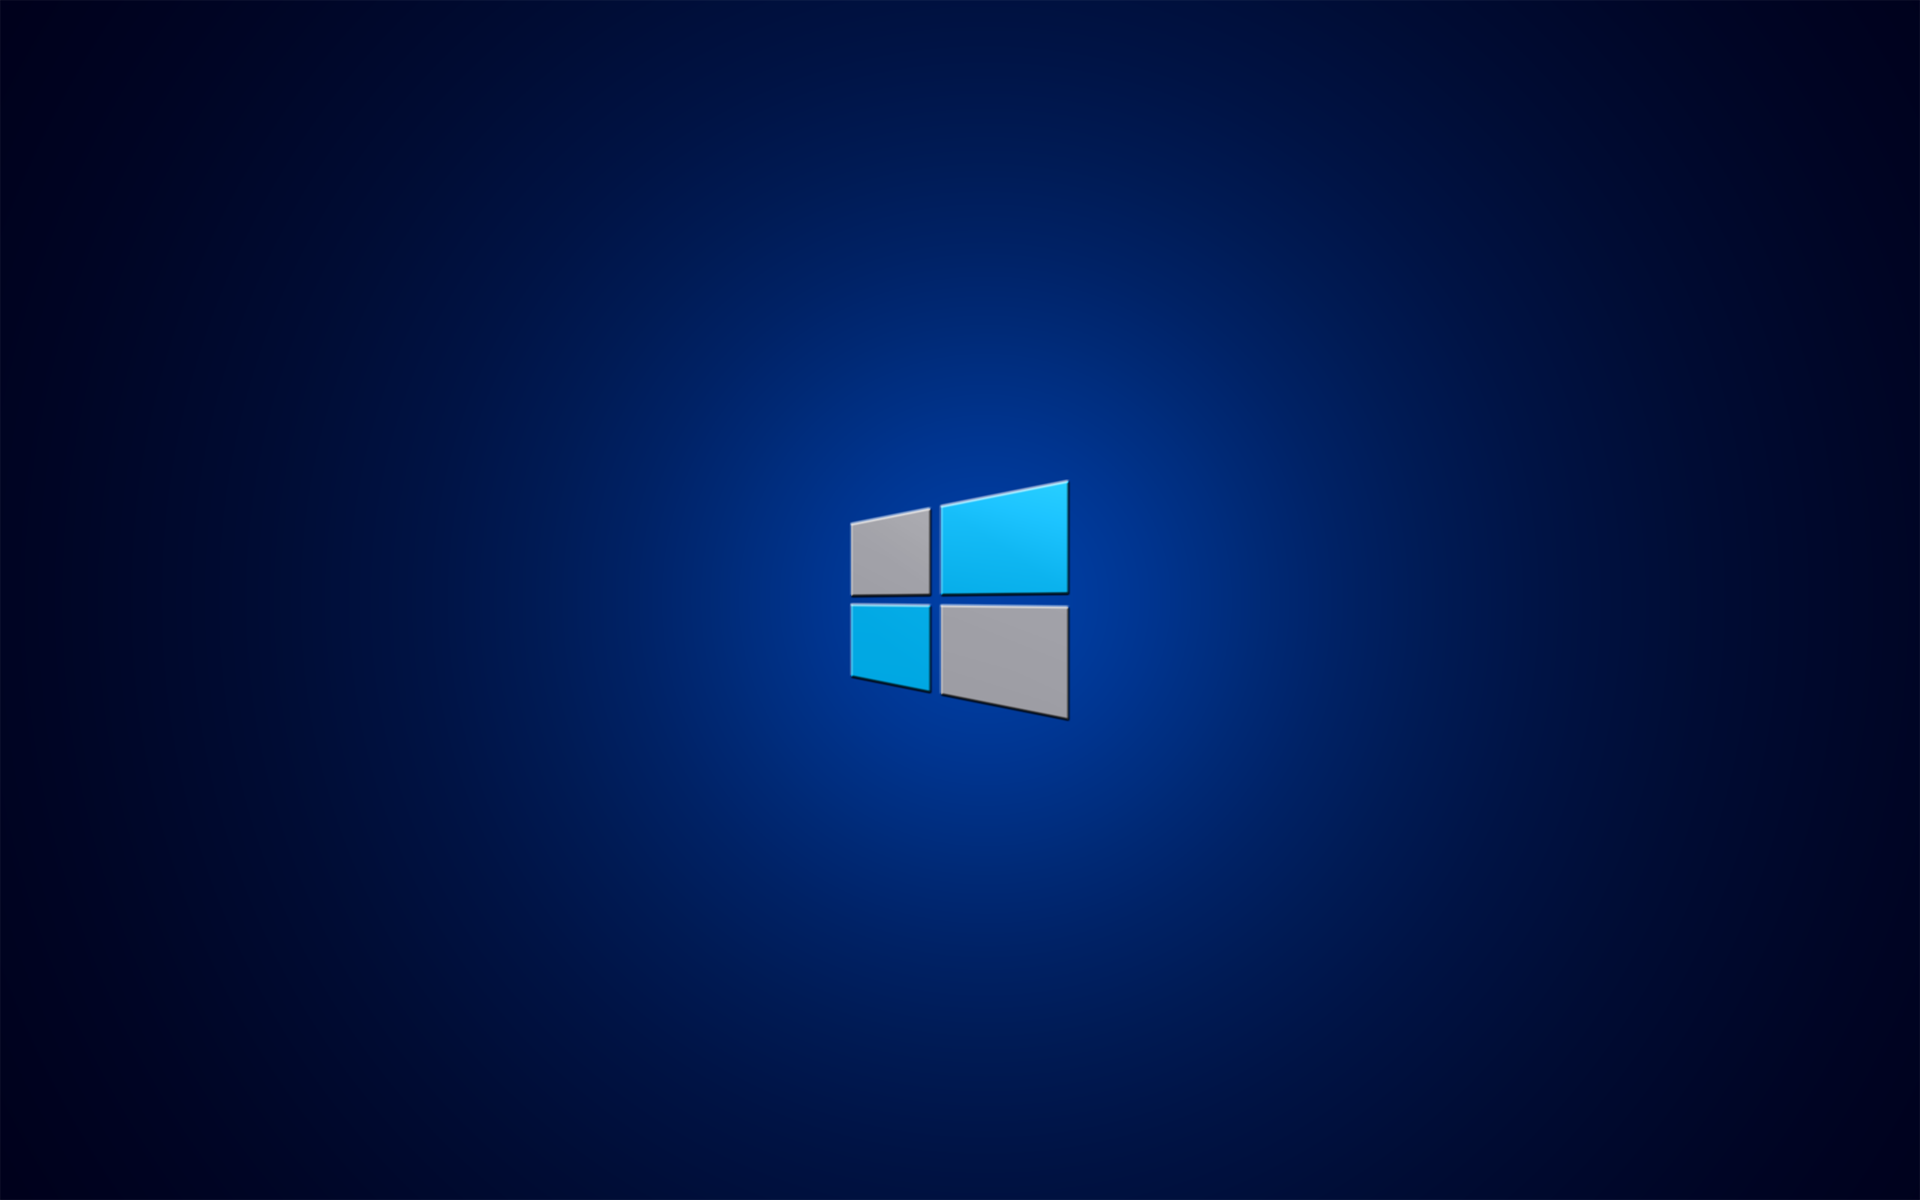 free windows wallpapers